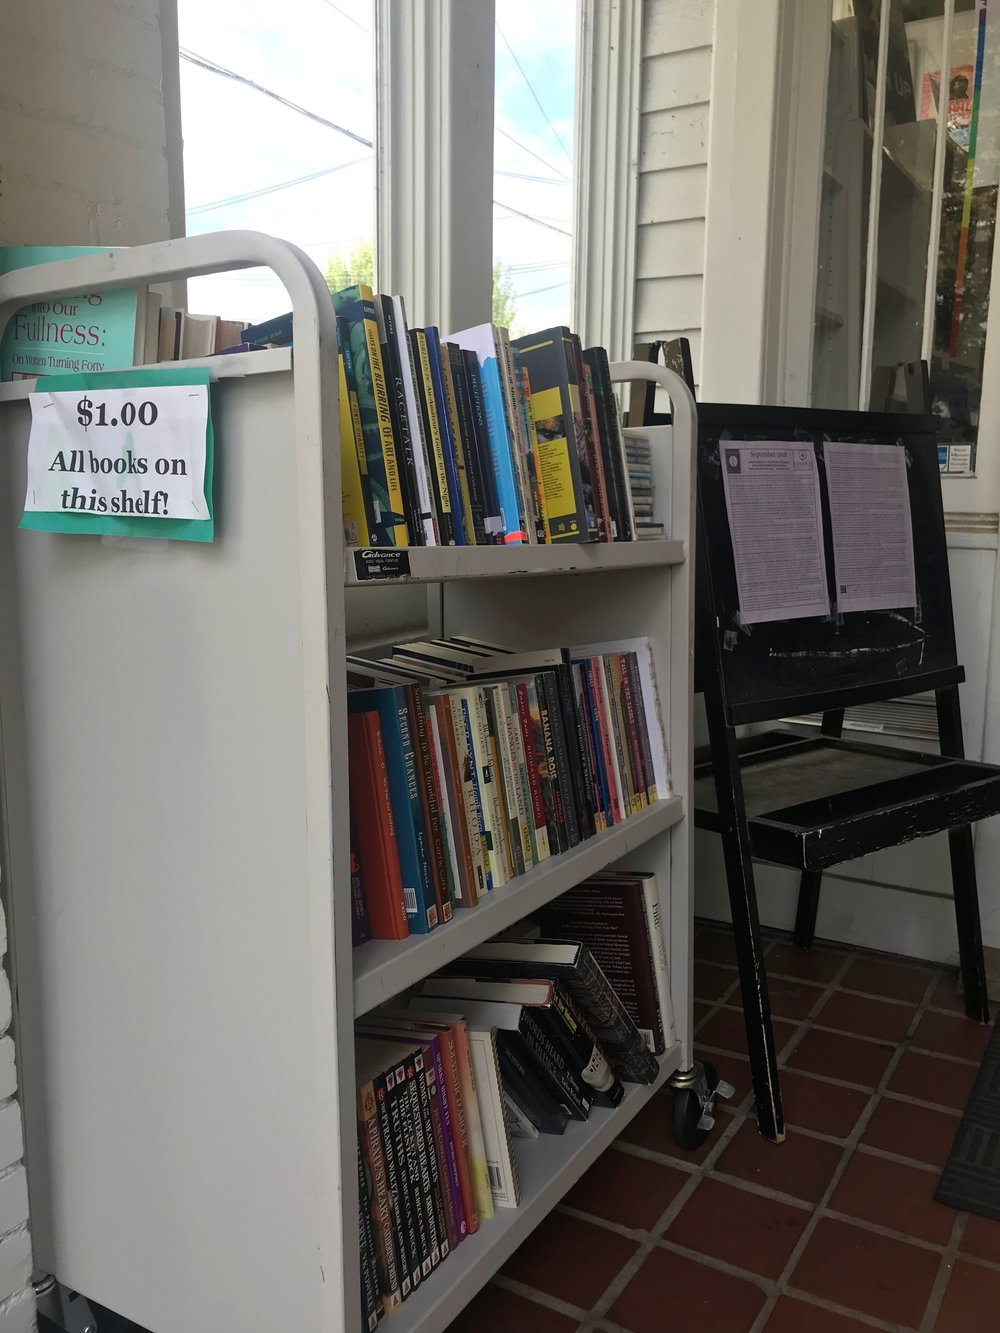 The entrance of one of the independent bookstores we visited.